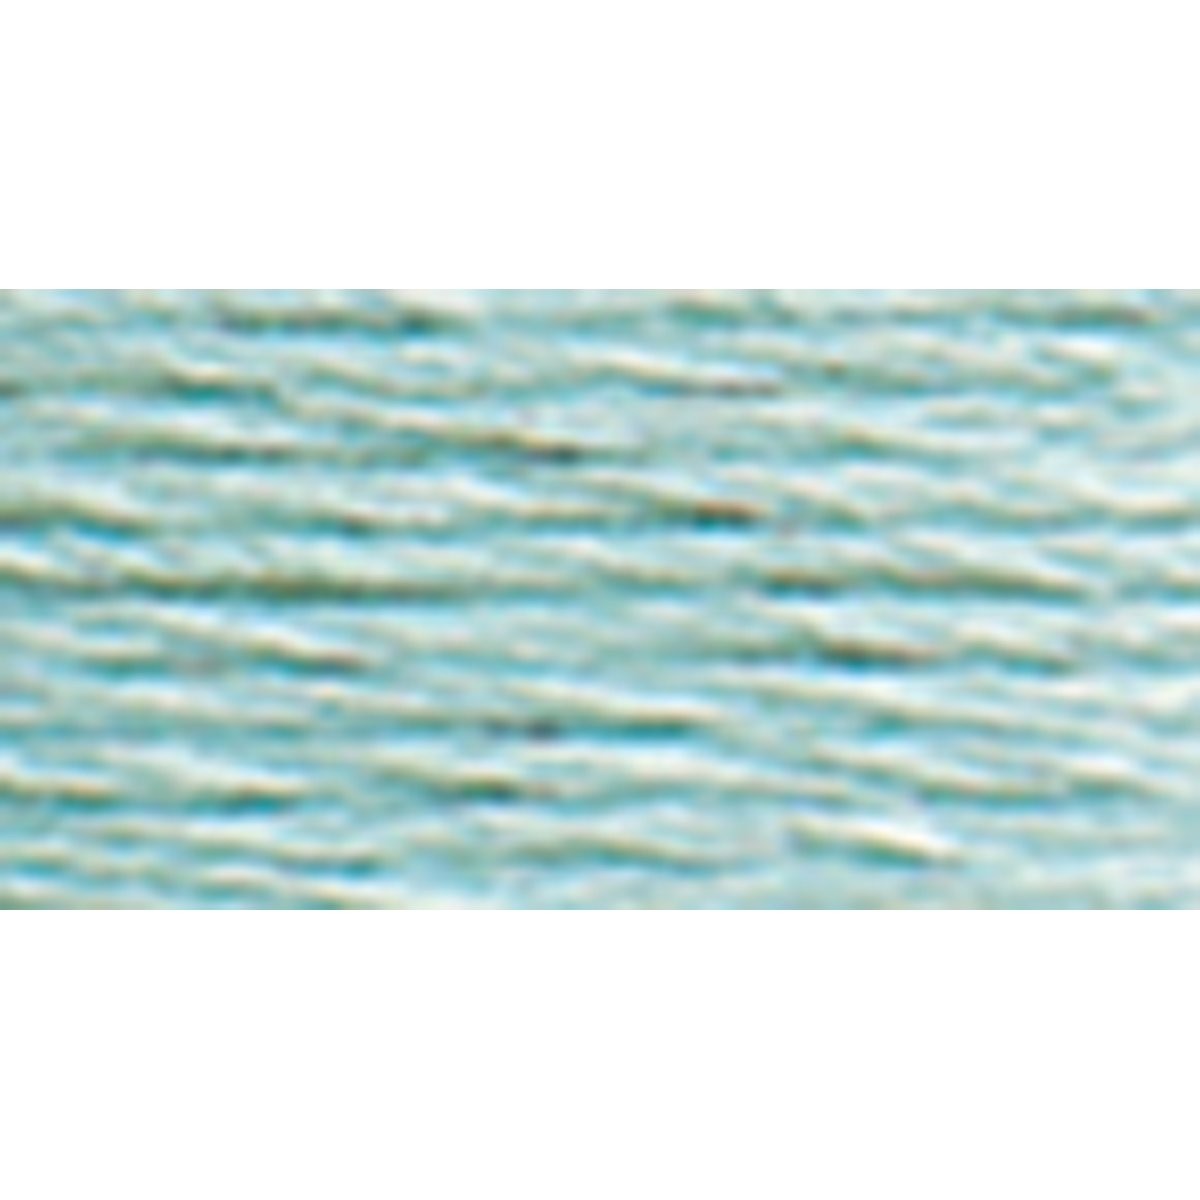 DMC 117-3811 Mouline Stranded Cotton Six Strand Embroidery Floss Thread, Light Turquoise, 8.7-Yard Notions - In Network